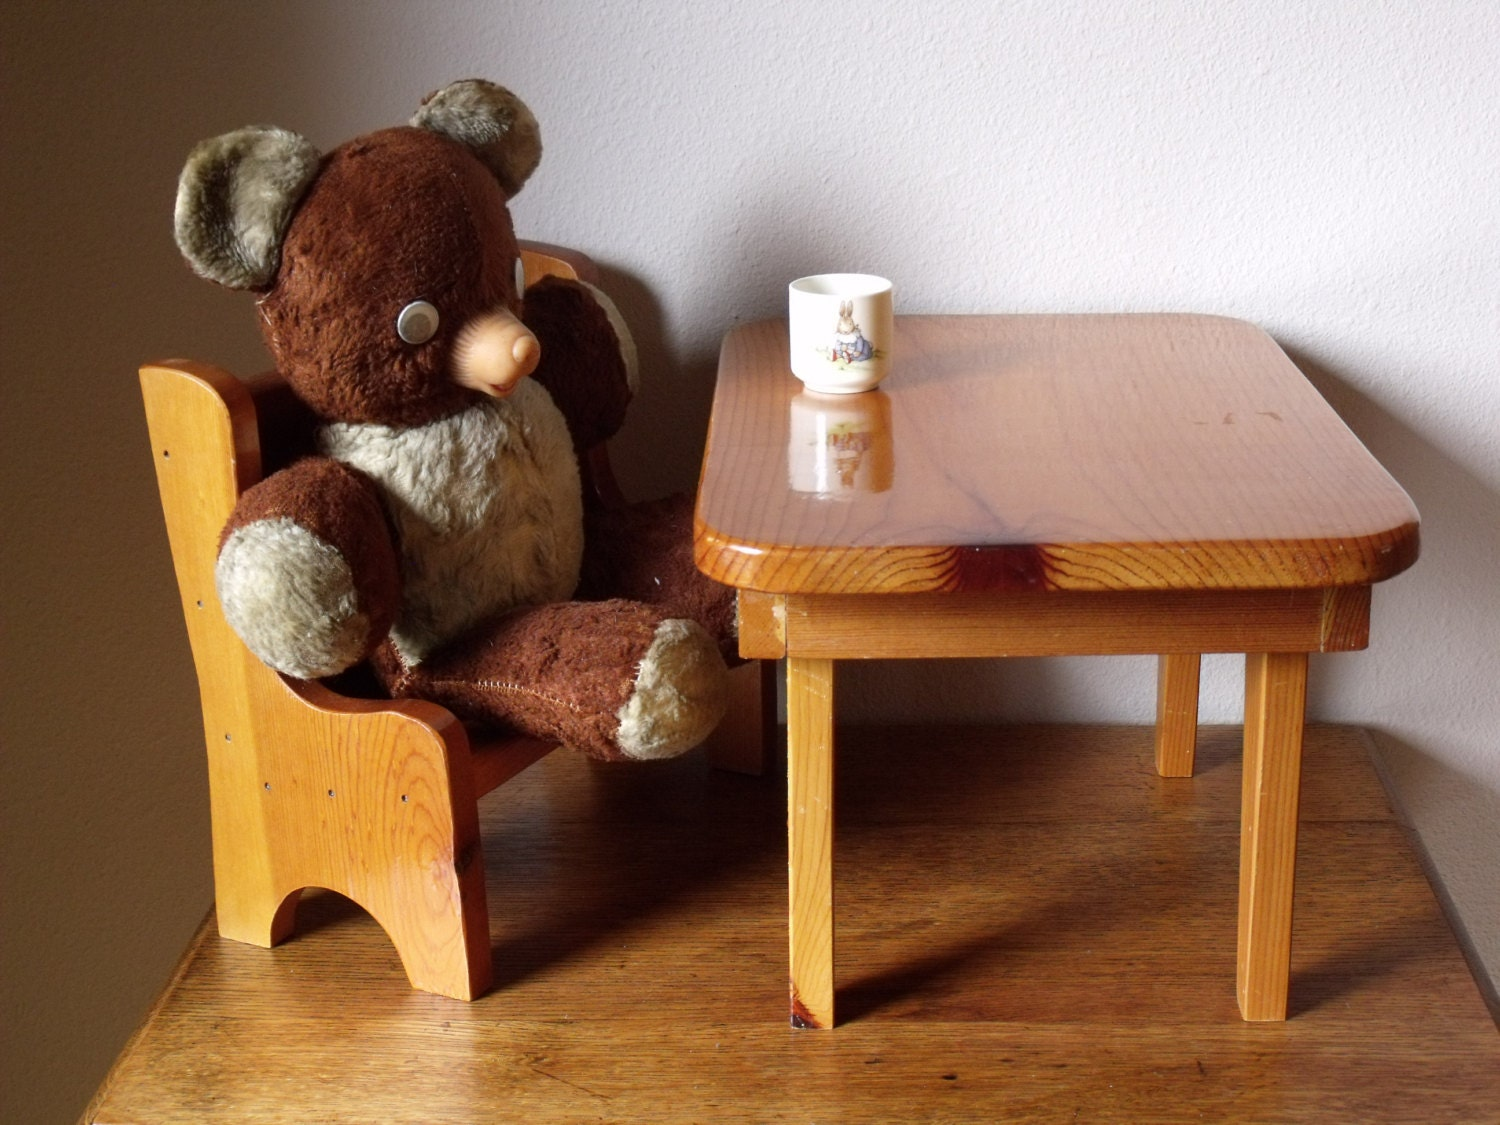 doll size furniture for bears or dolls doll by trilliumandfern